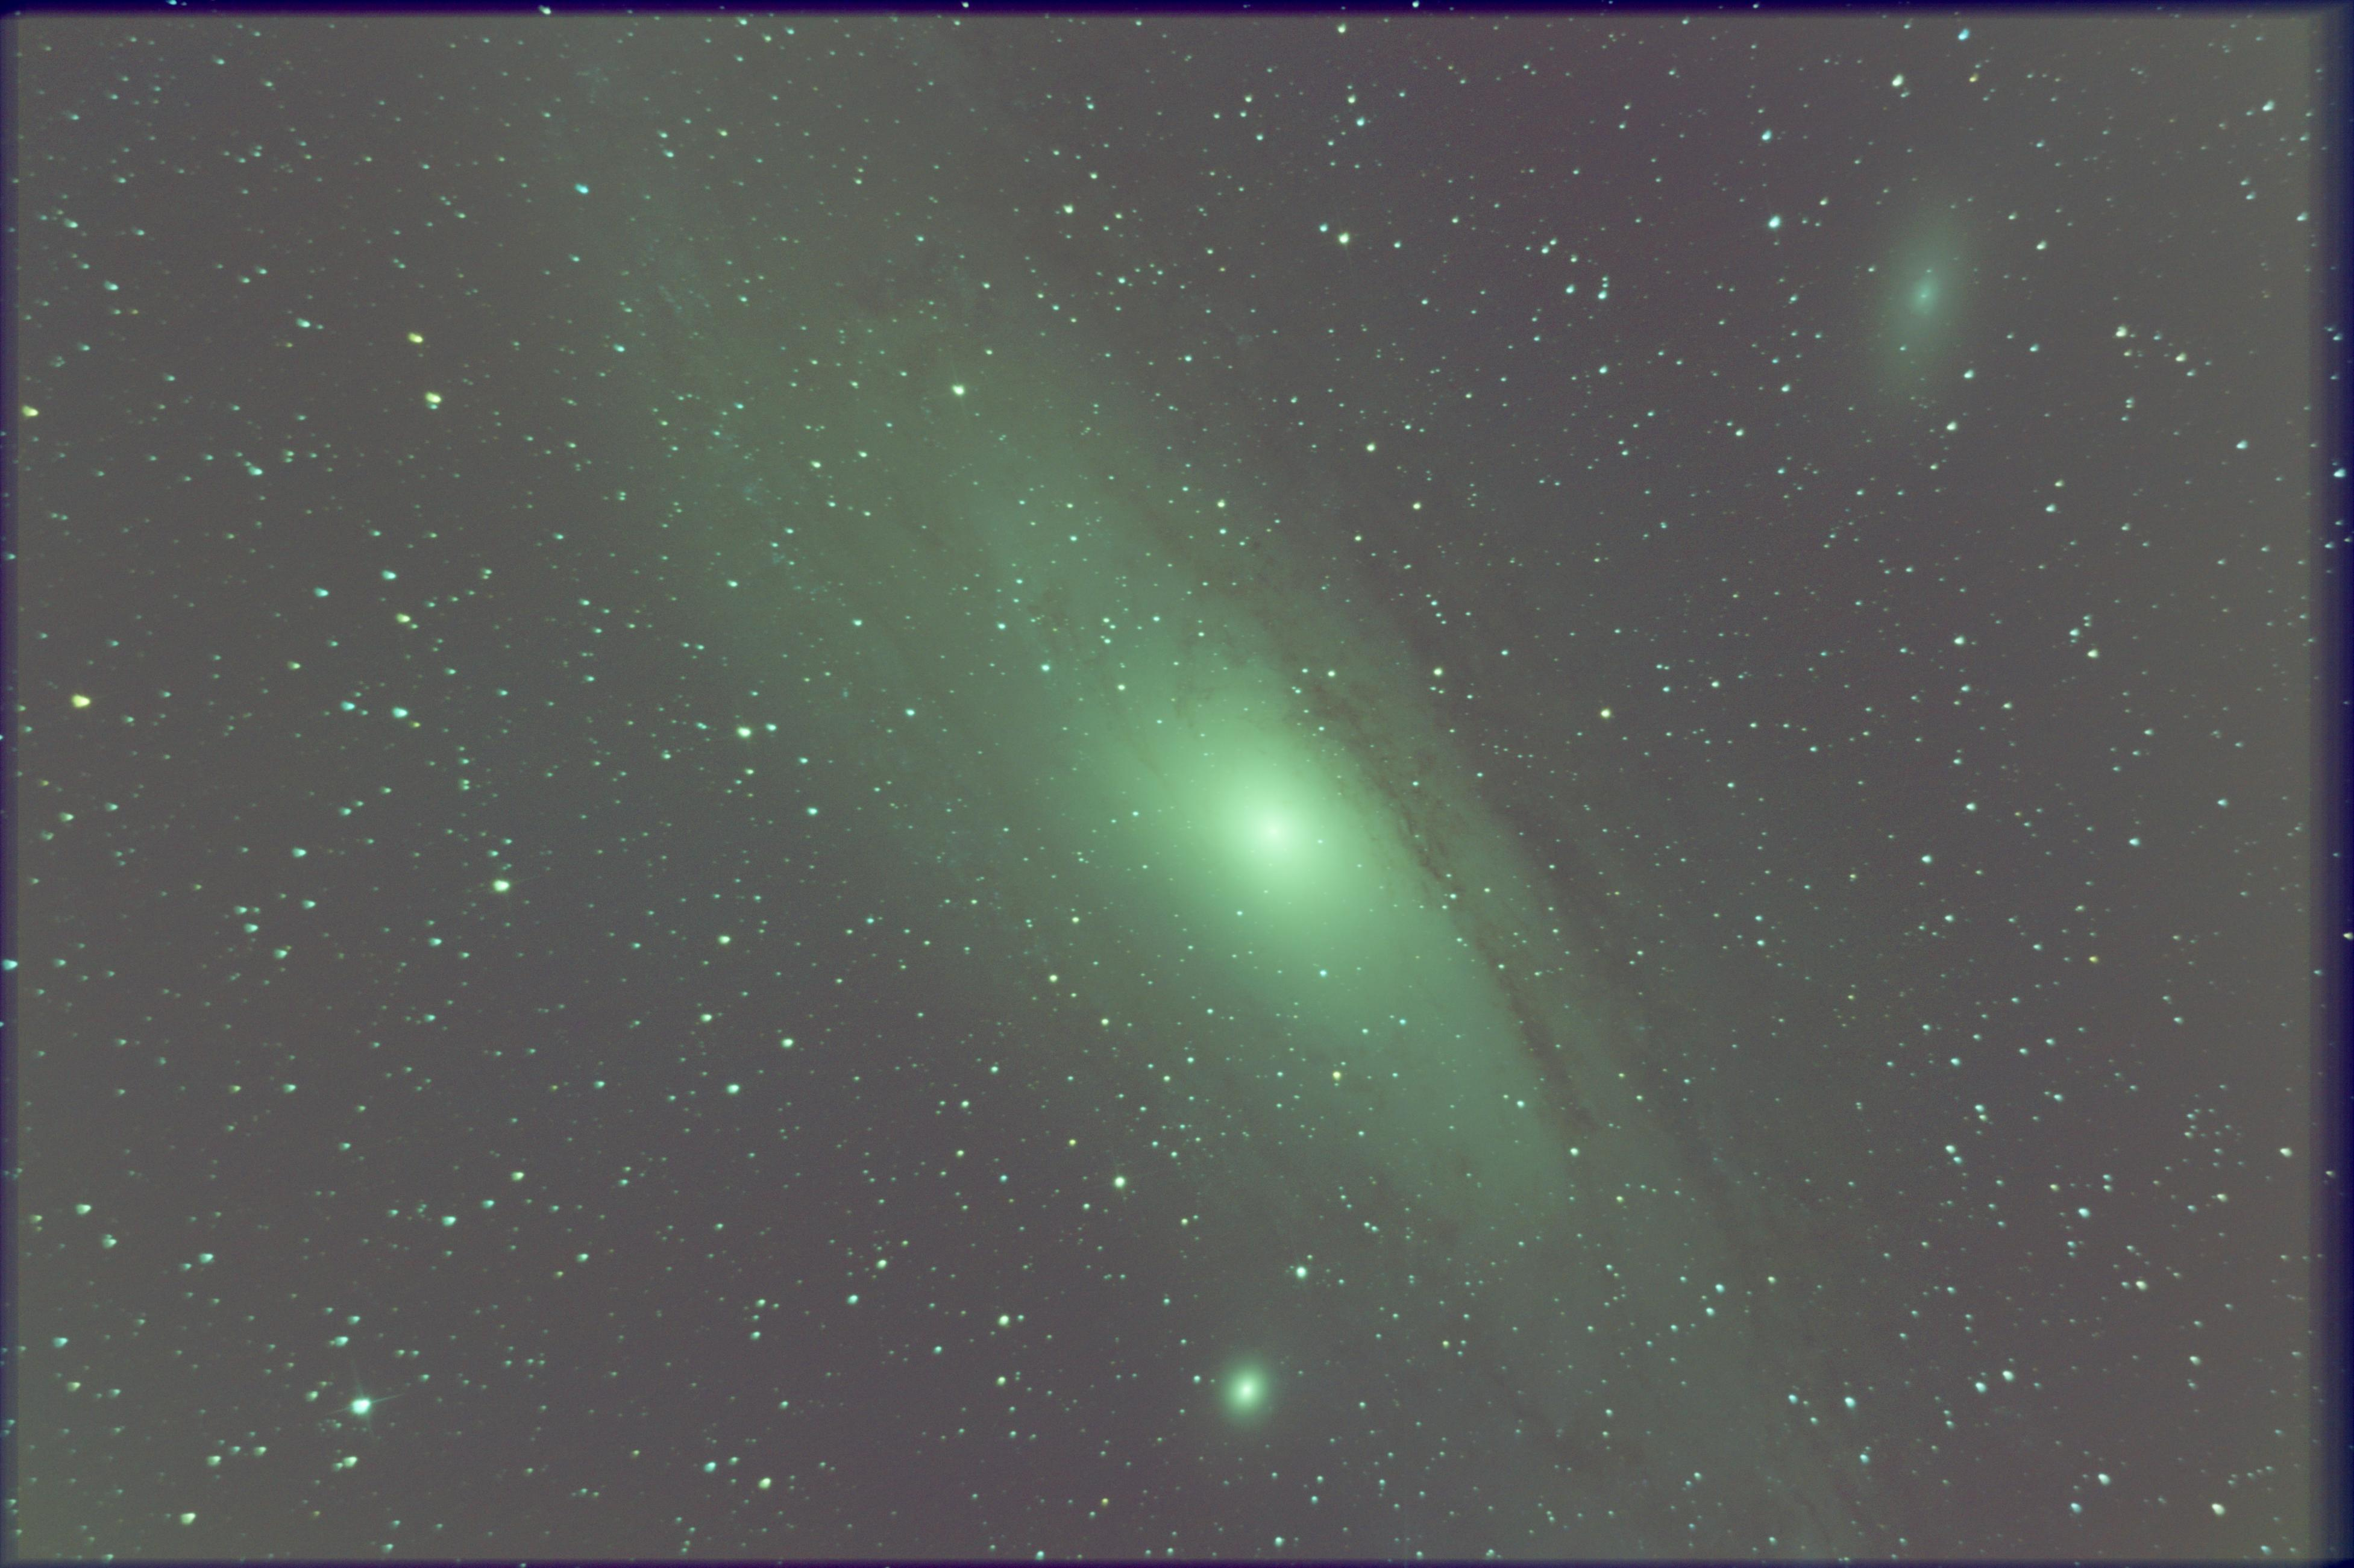 M31 Galaxie d'Andromède M31-0070